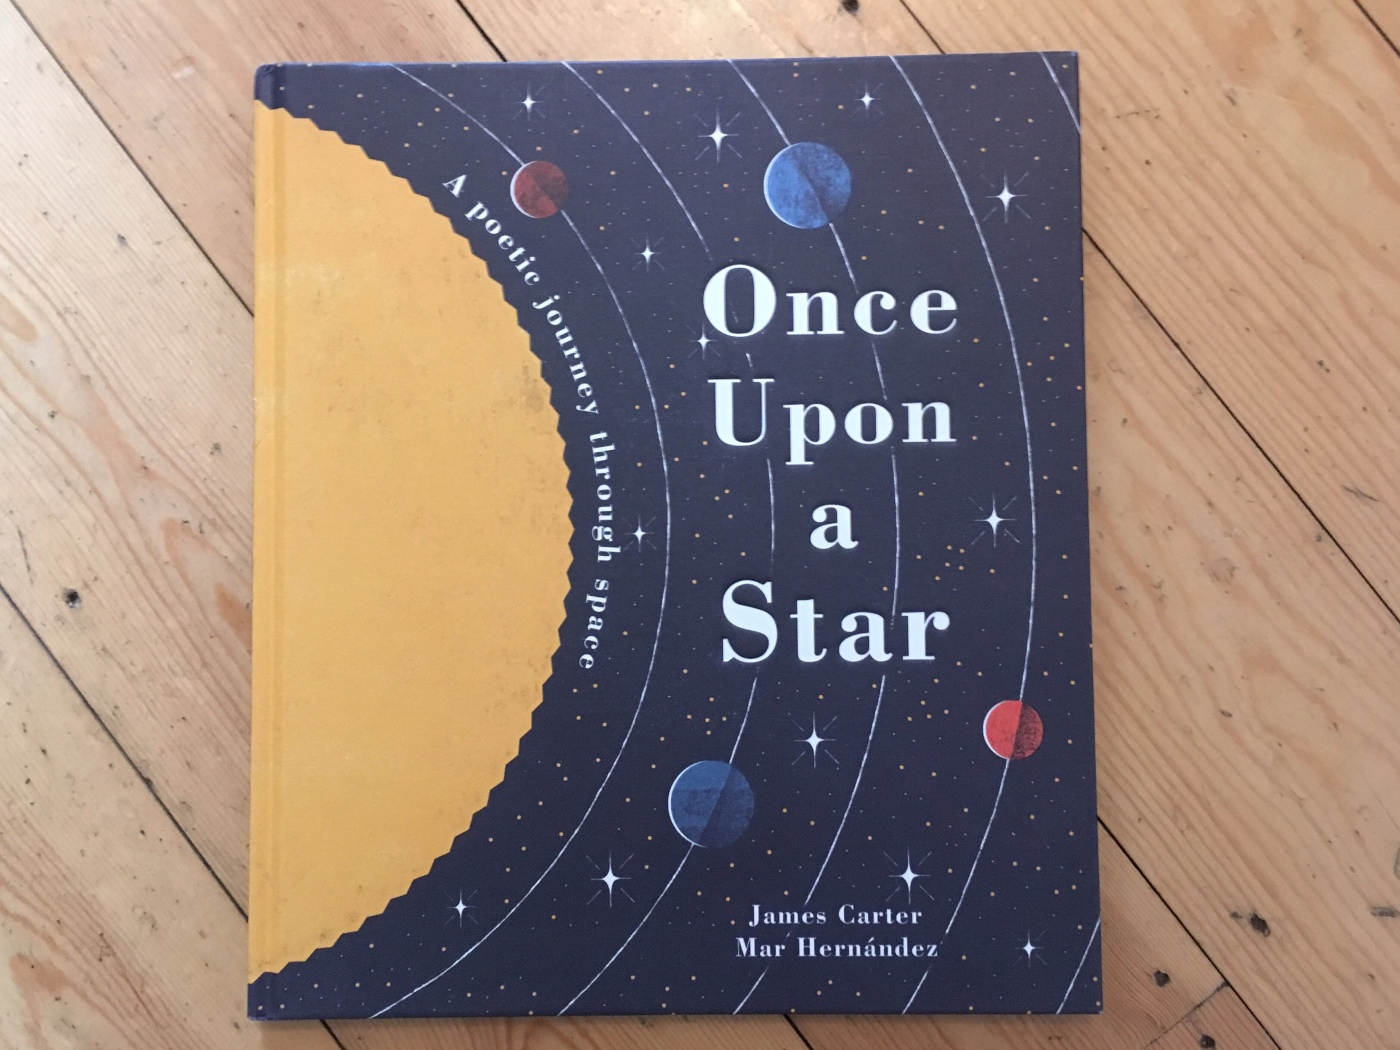 Once Upon A Star by James Carter and Mar Hernandez